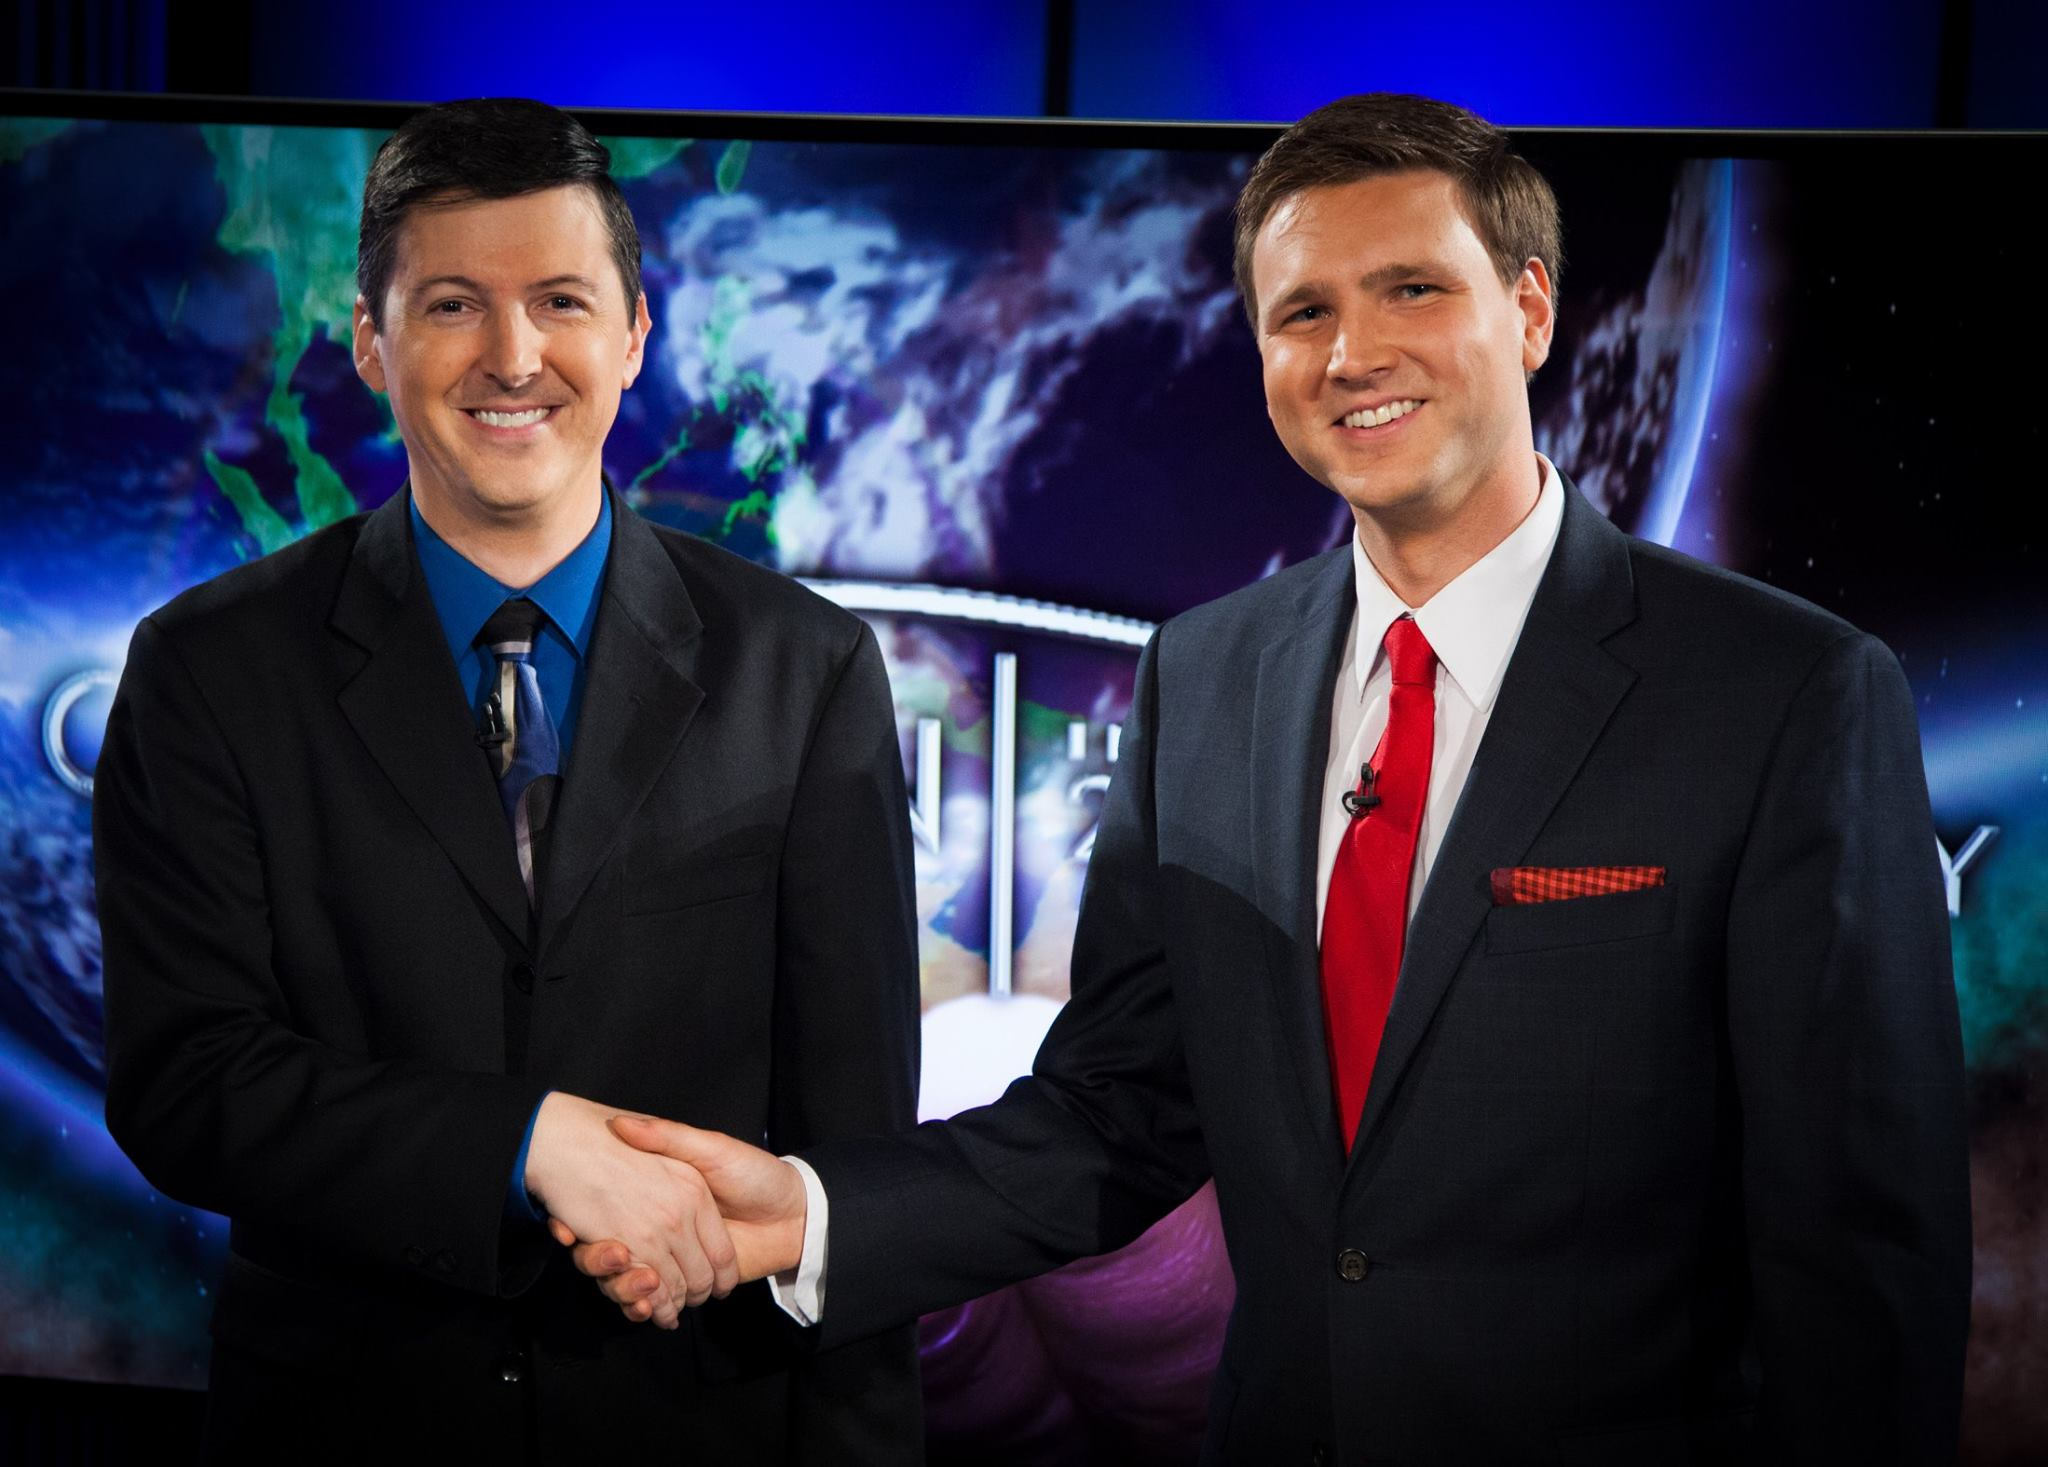 Astronomy Confirms A Young Universe with David Rives and Dr. Jason Lisle on TBN